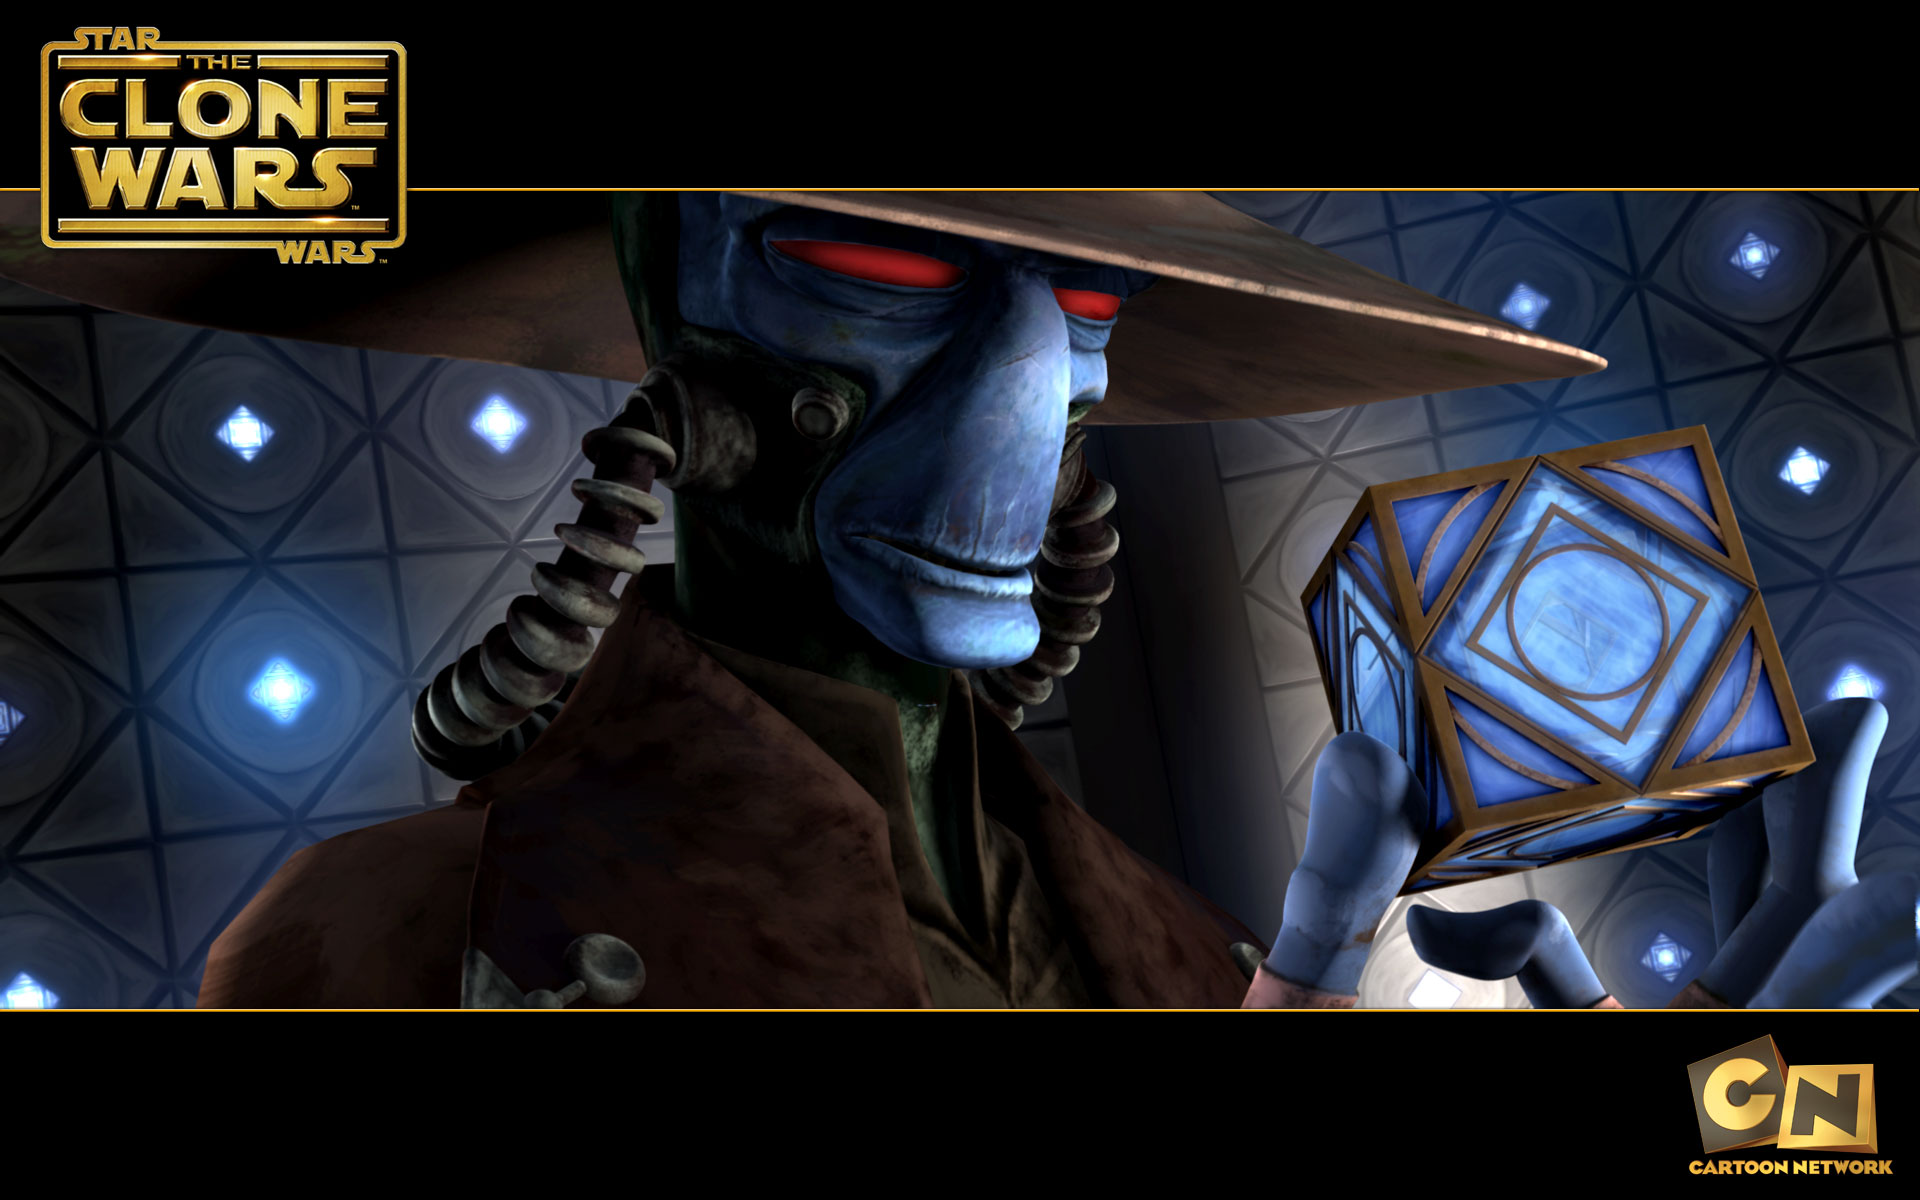 Star wars the clone wars cad bane wallpaper